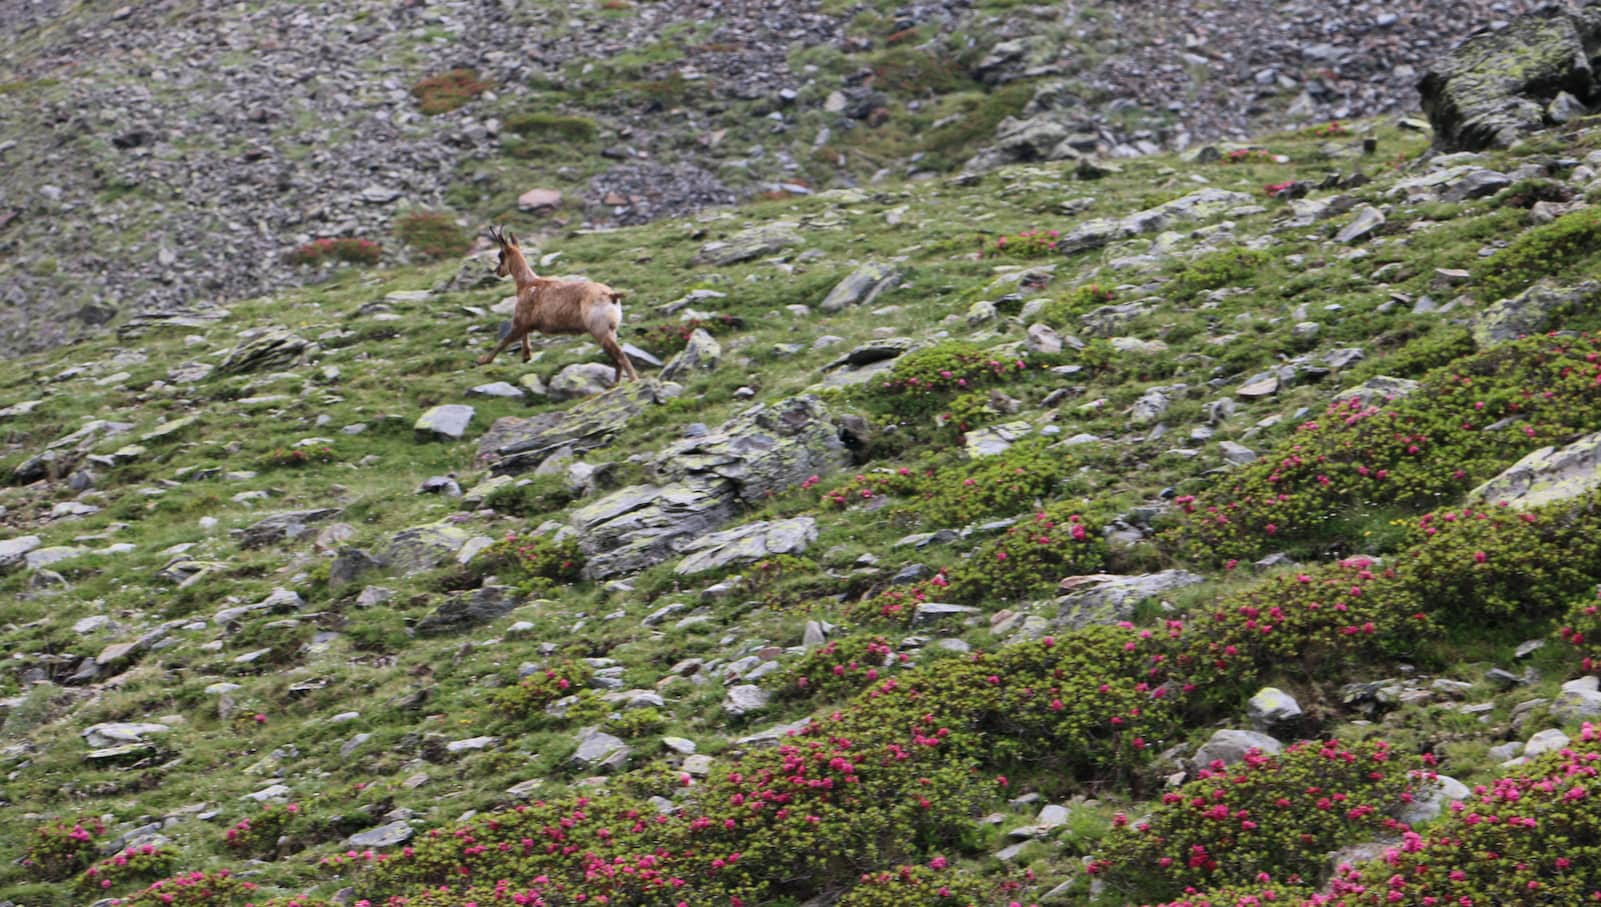 Chamois running in a meadow with rhododendrons.